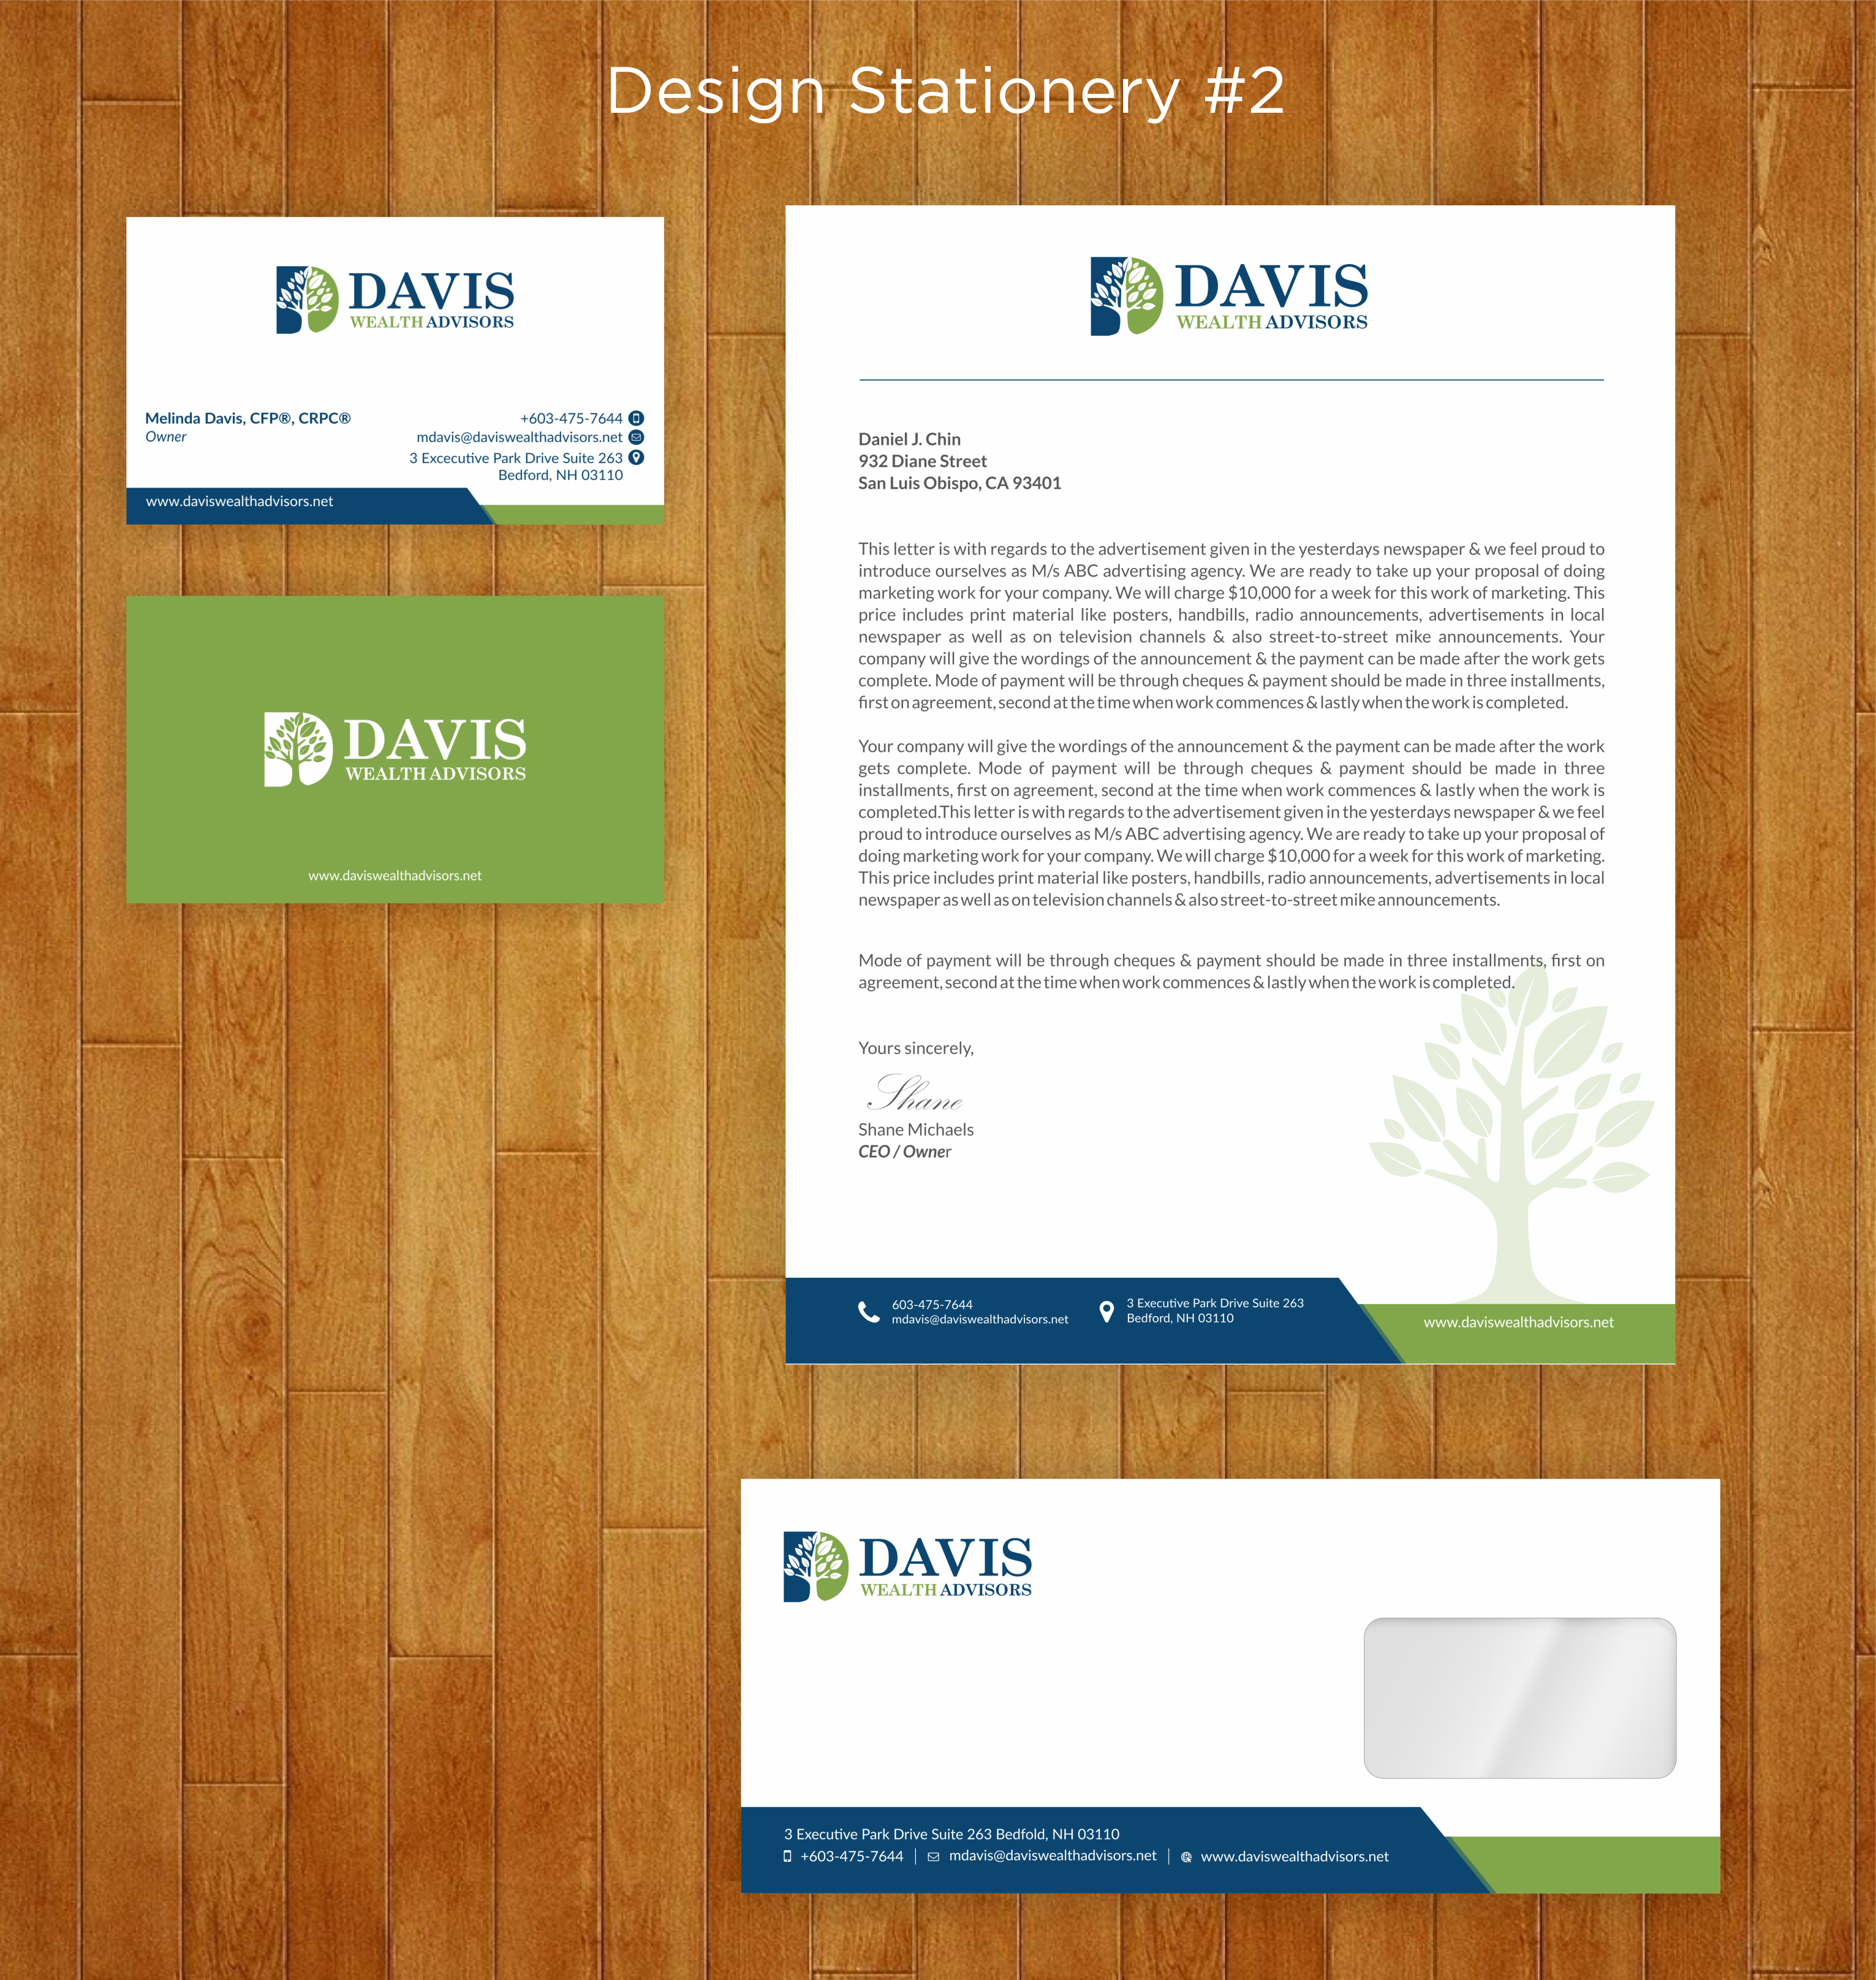 Harness your creative talent to launch the Davis Wealth Advisors Brand